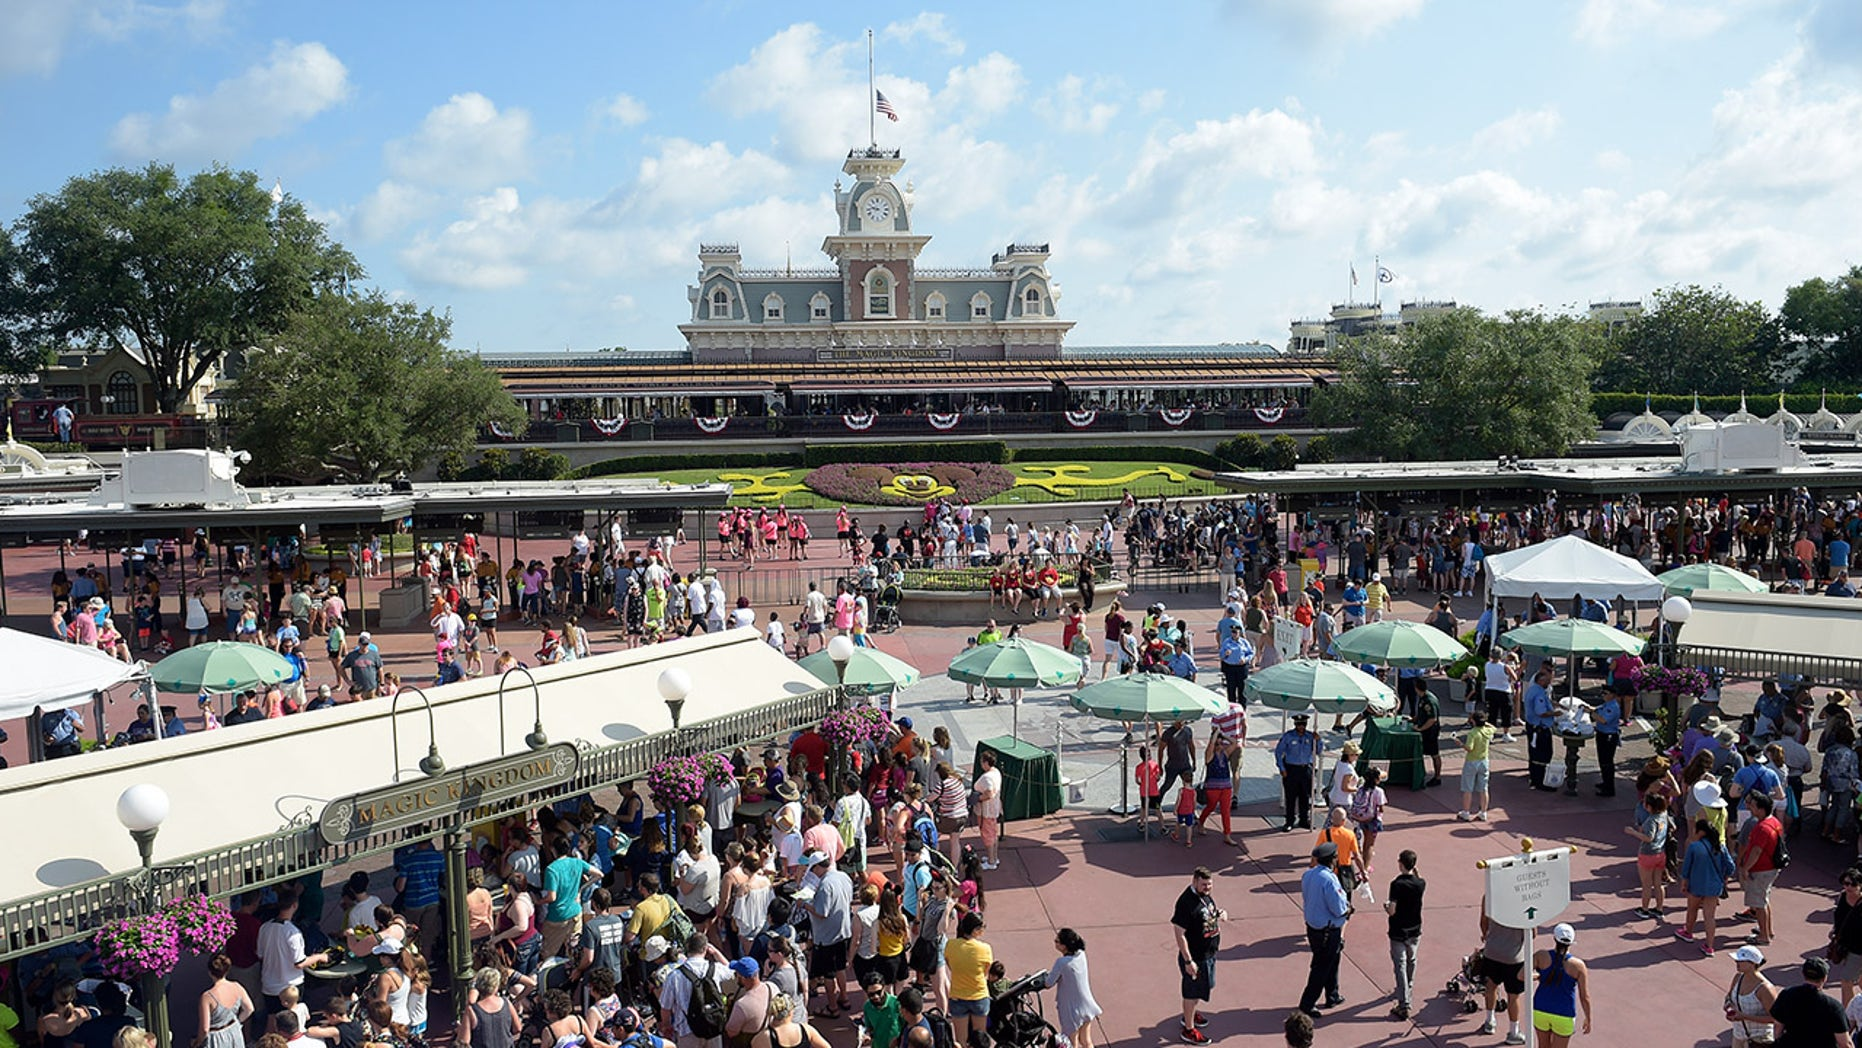 A federal appeals court is giving a green light for visitors with autism to proceed with lawsuits against Disney theme parks that claimed not enough was being done to accommodate them.